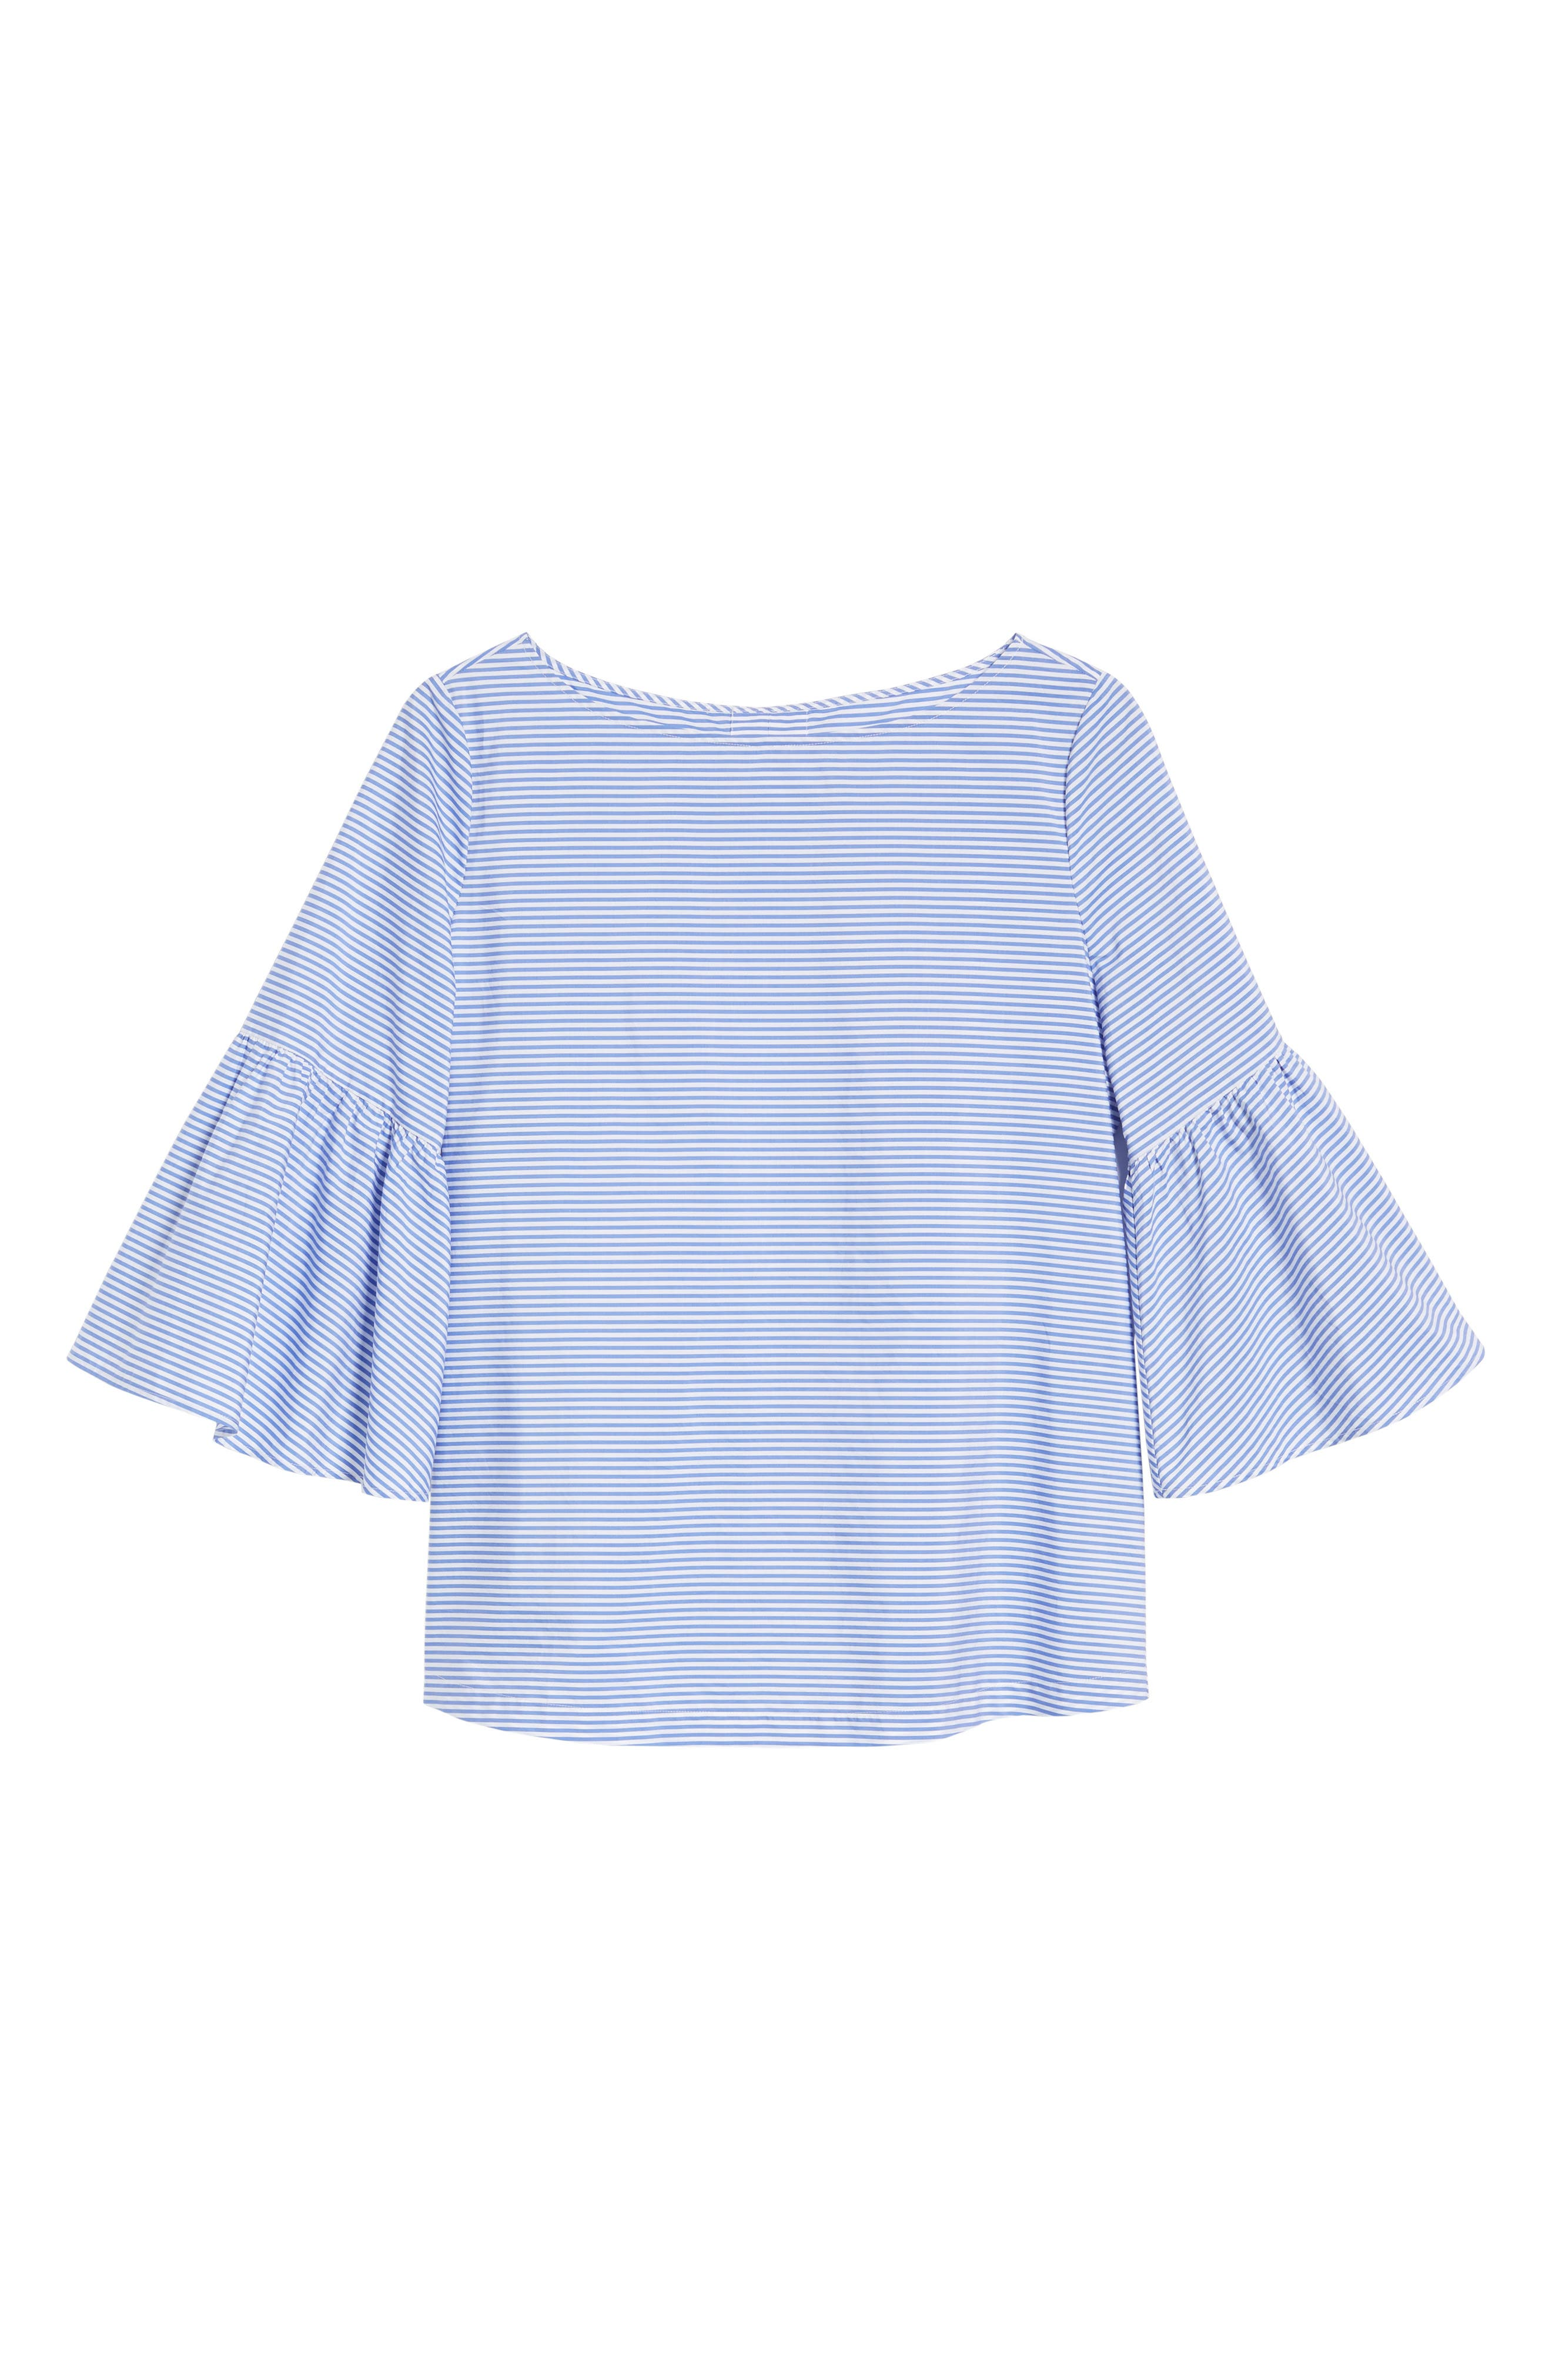 Bell Sleeve Bow Back Top,                             Alternate thumbnail 6, color,                             420